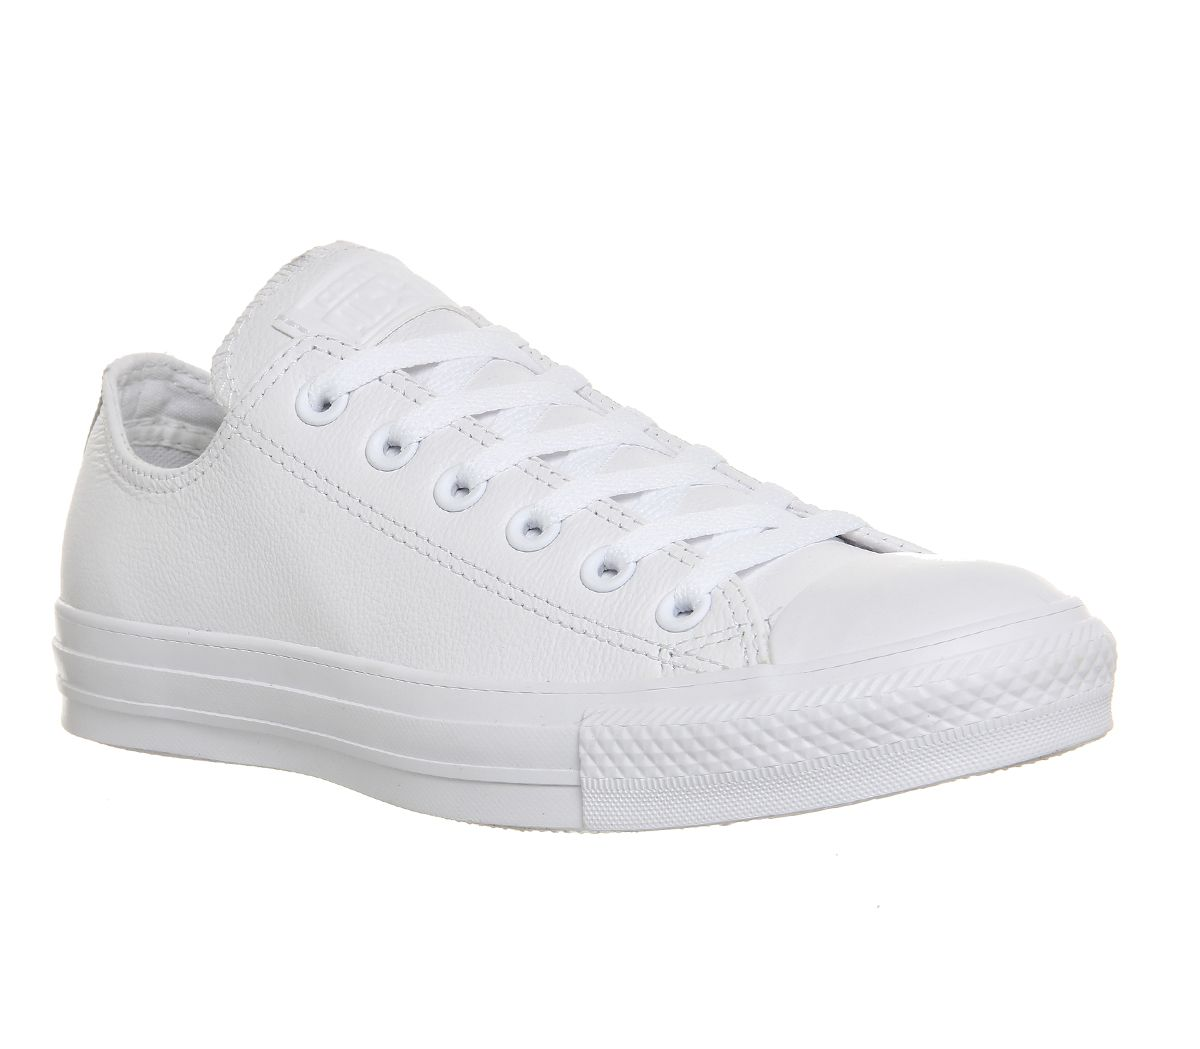 6e6f3a8b804d Converse All Star Low Leather White Mono Leather - Unisex Sports